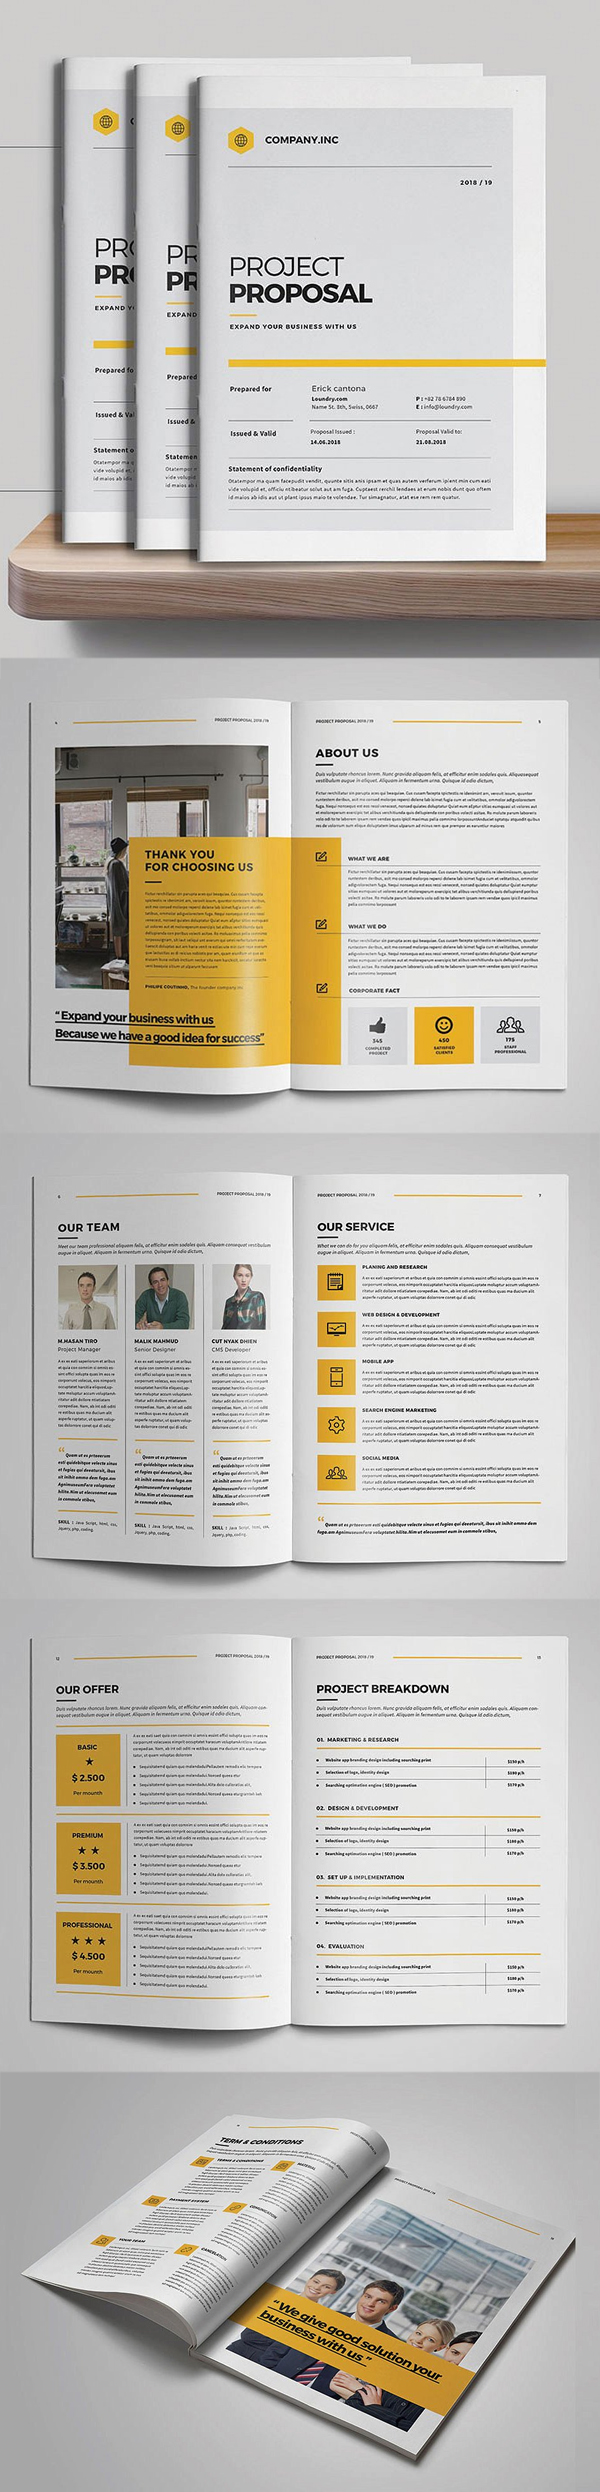 Professional Business Proposal Templates Design - 13